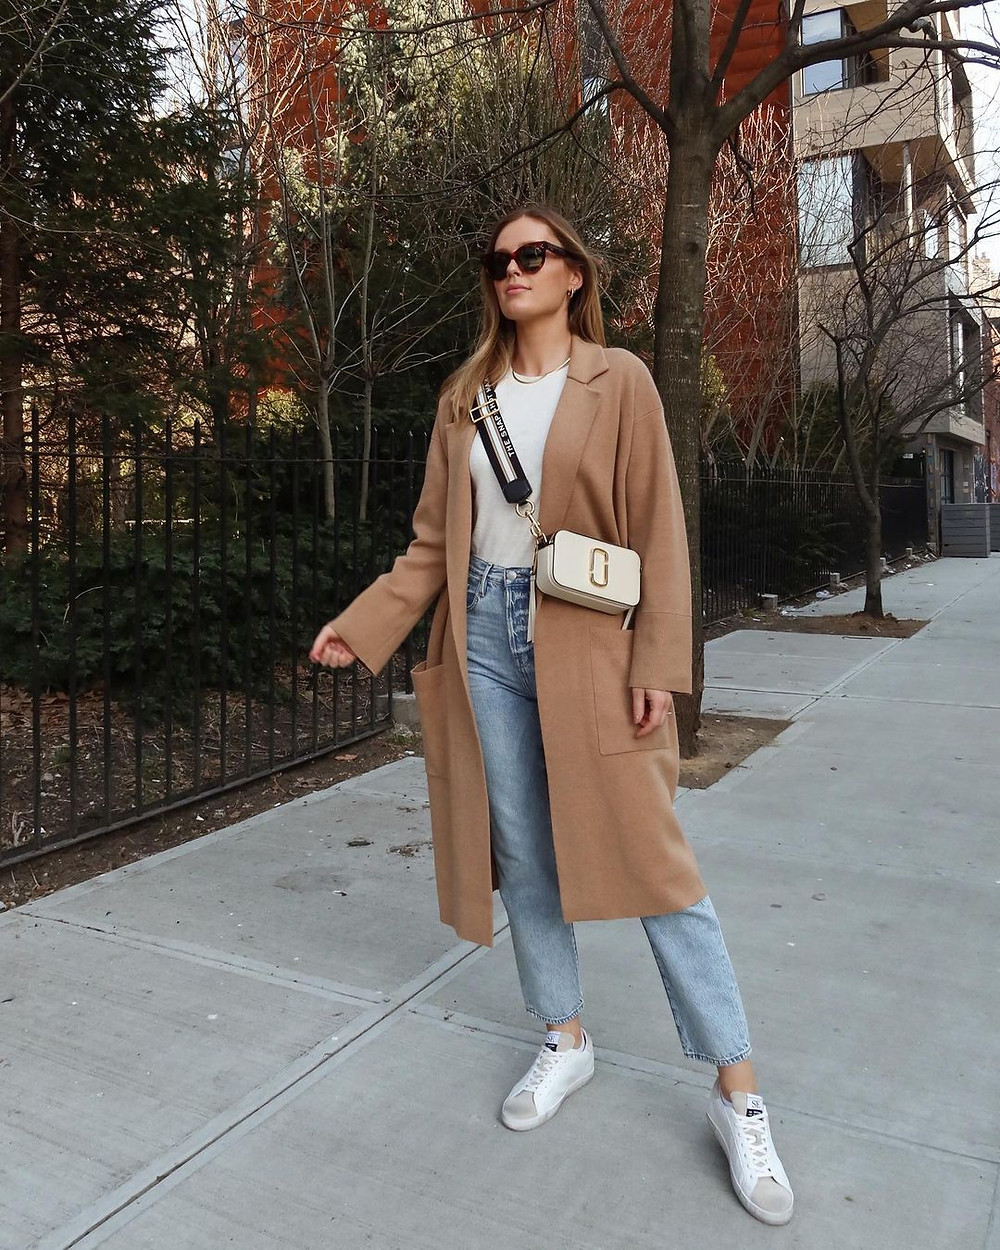 charlotte bridgeman in a camel coat, jeans, t-shirt, crossbody bag, white sneakers and sunglasses in nyc